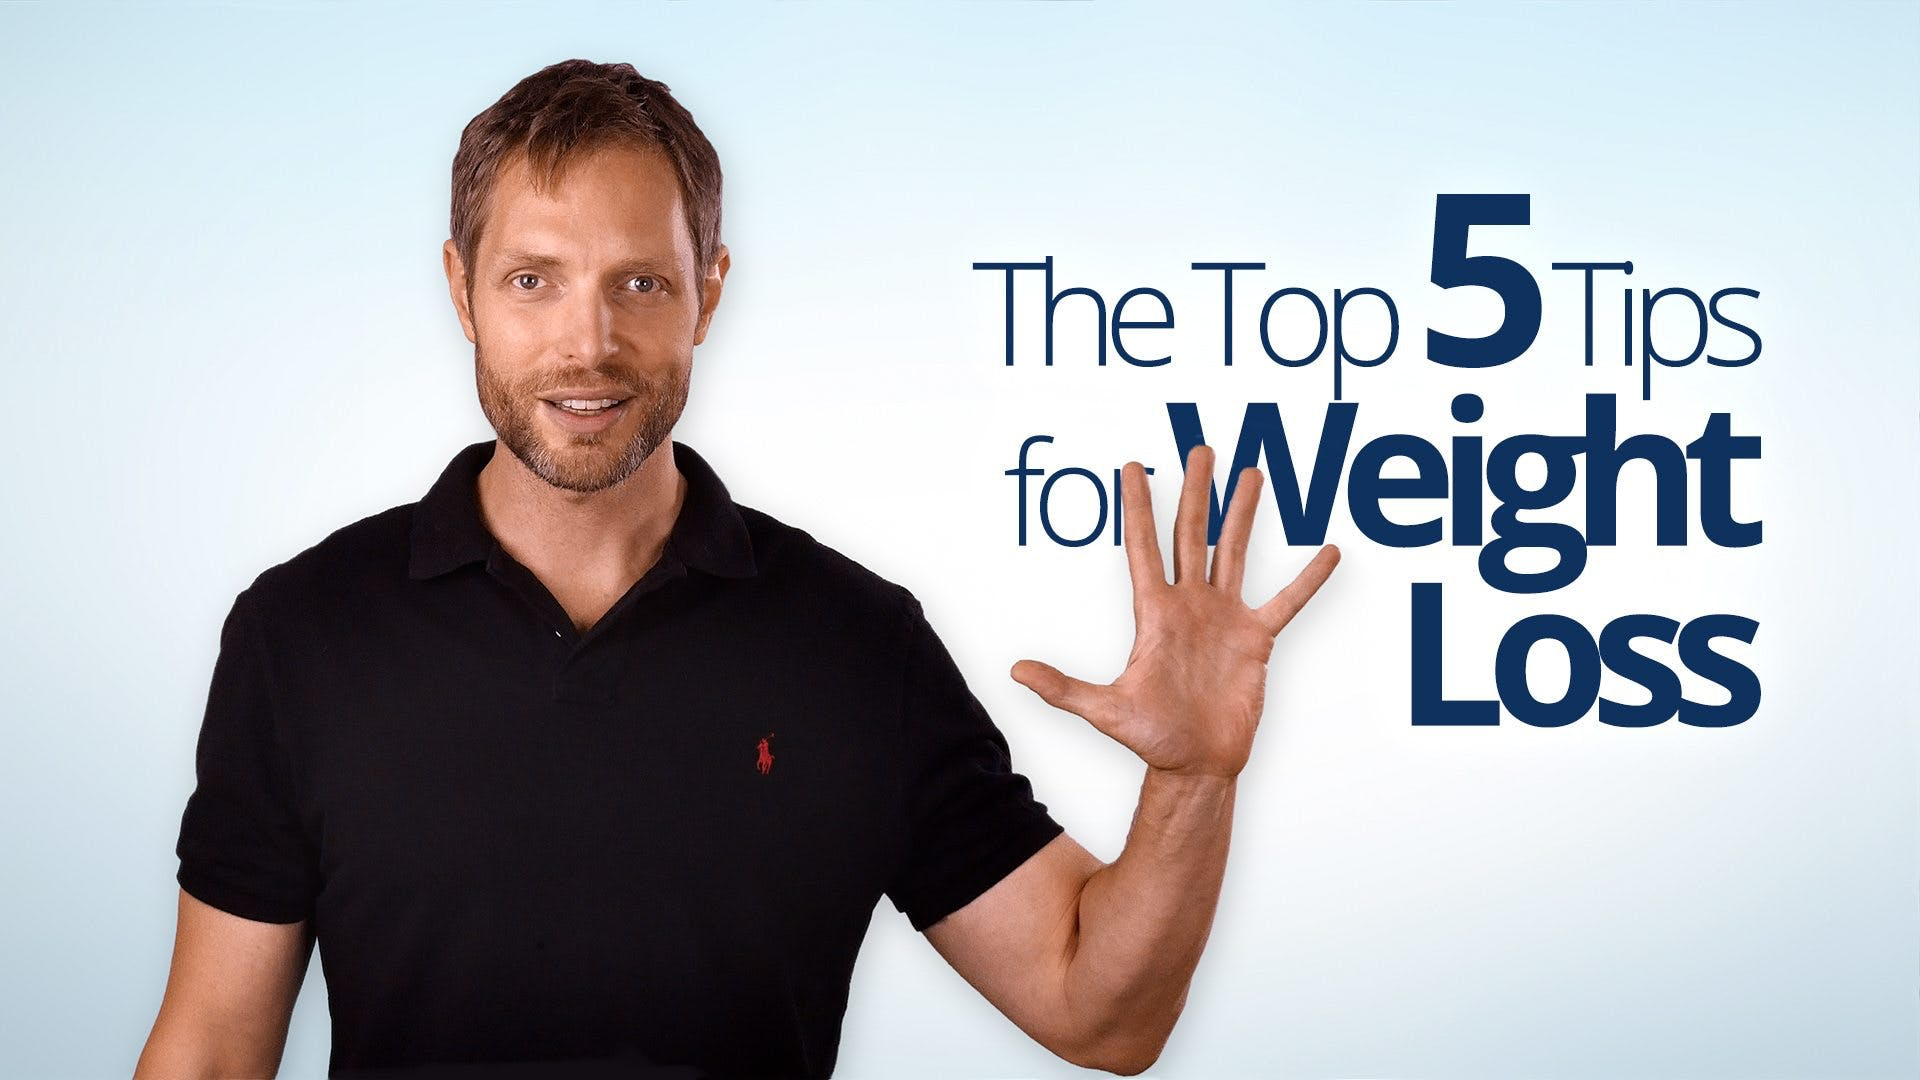 The Top 5 Tips For Weight Loss